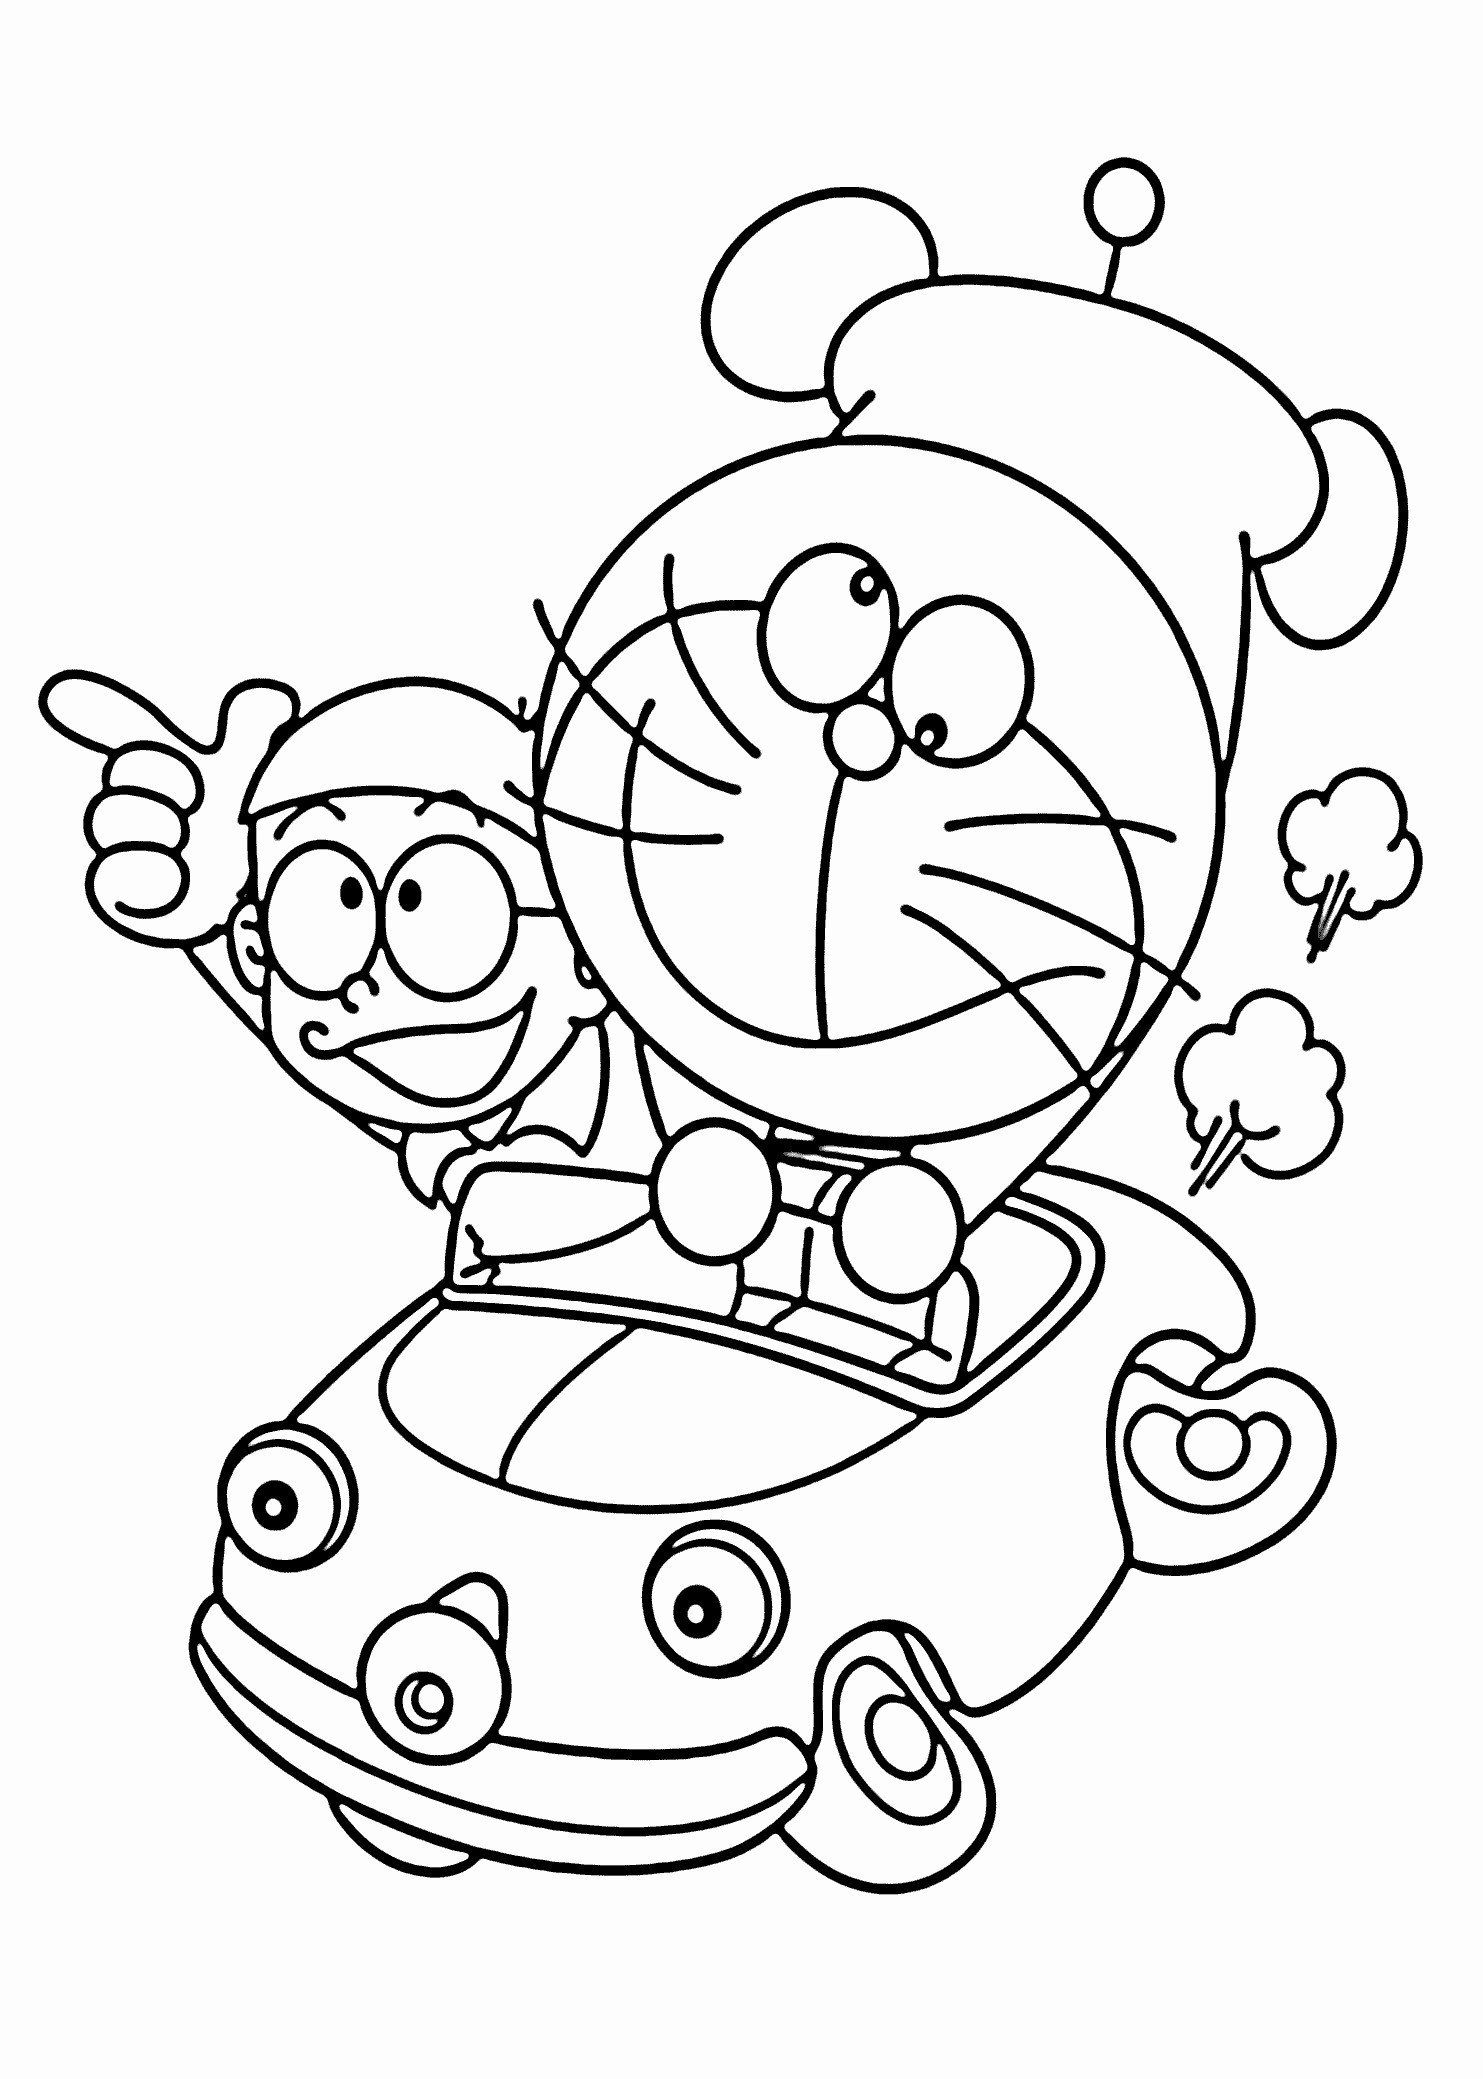 Little Einsteins Coloring Pages New Coloring Ideas Little Kids Coloring For Toddler In 2020 Valentine Coloring Pages Turkey Coloring Pages Coloring Pages Inspirational [ 2079 x 1483 Pixel ]